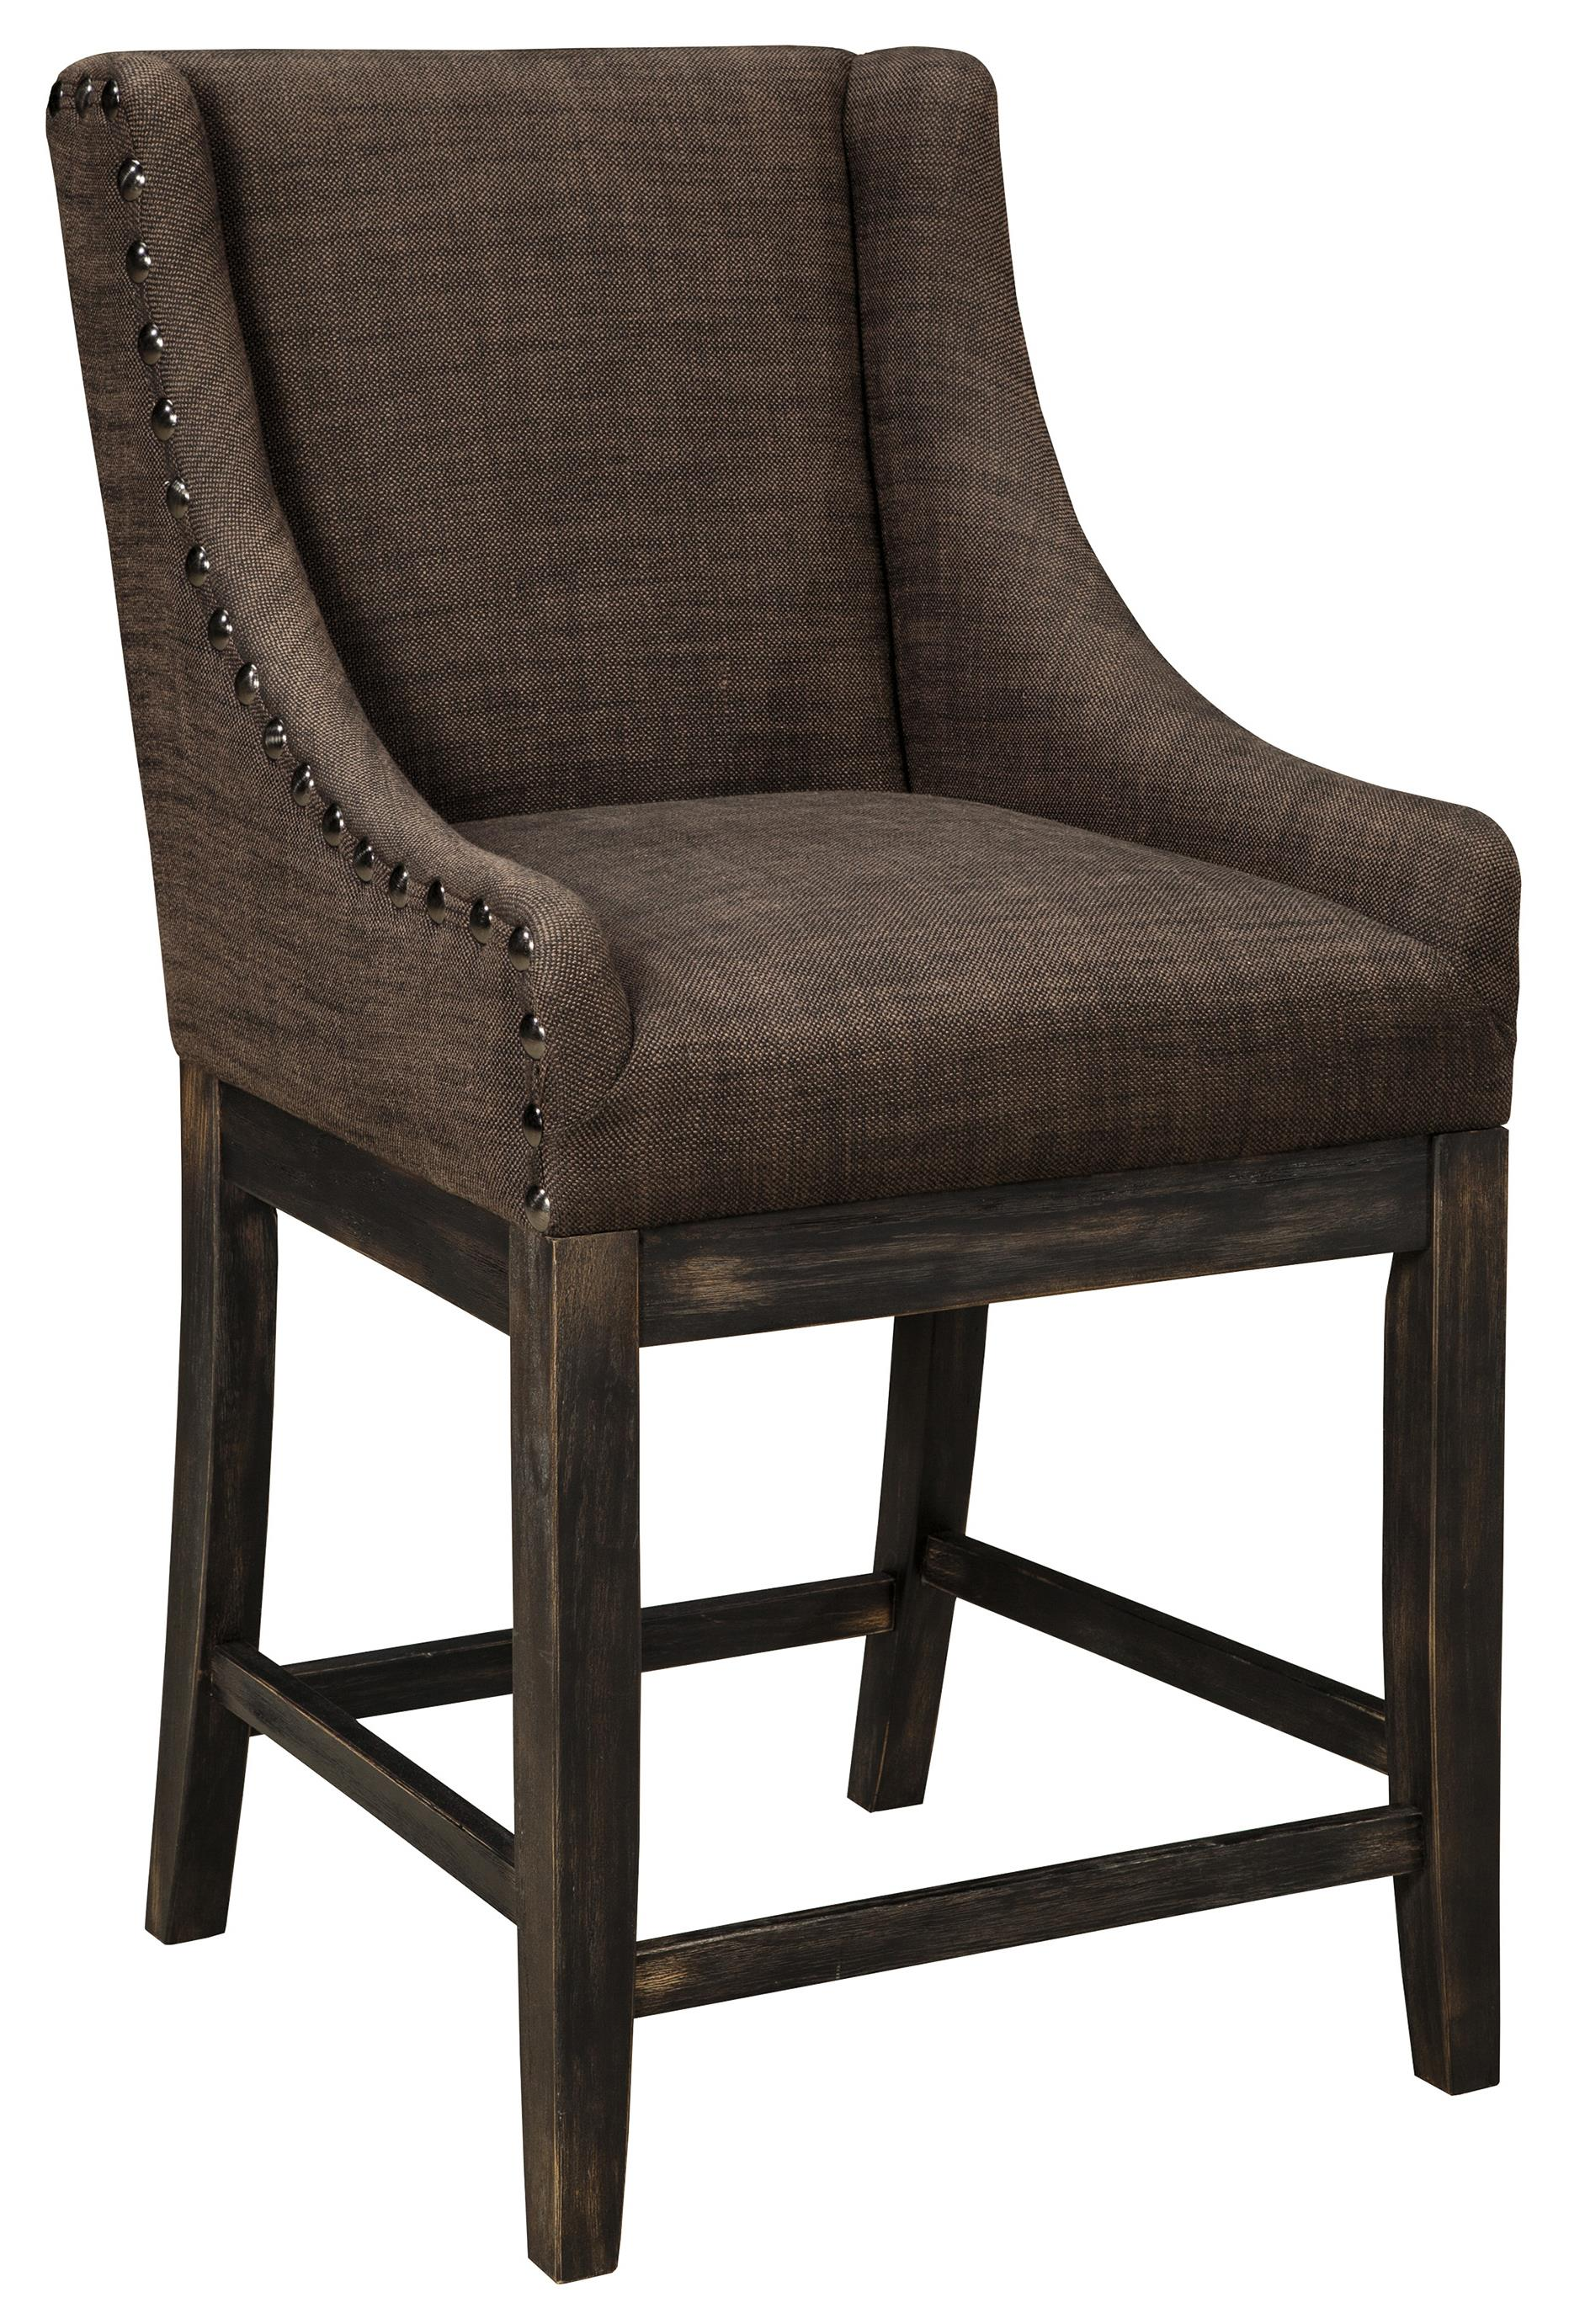 Signature Design by Ashley Moriann Upholstered Barstool - Item Number: D608-424